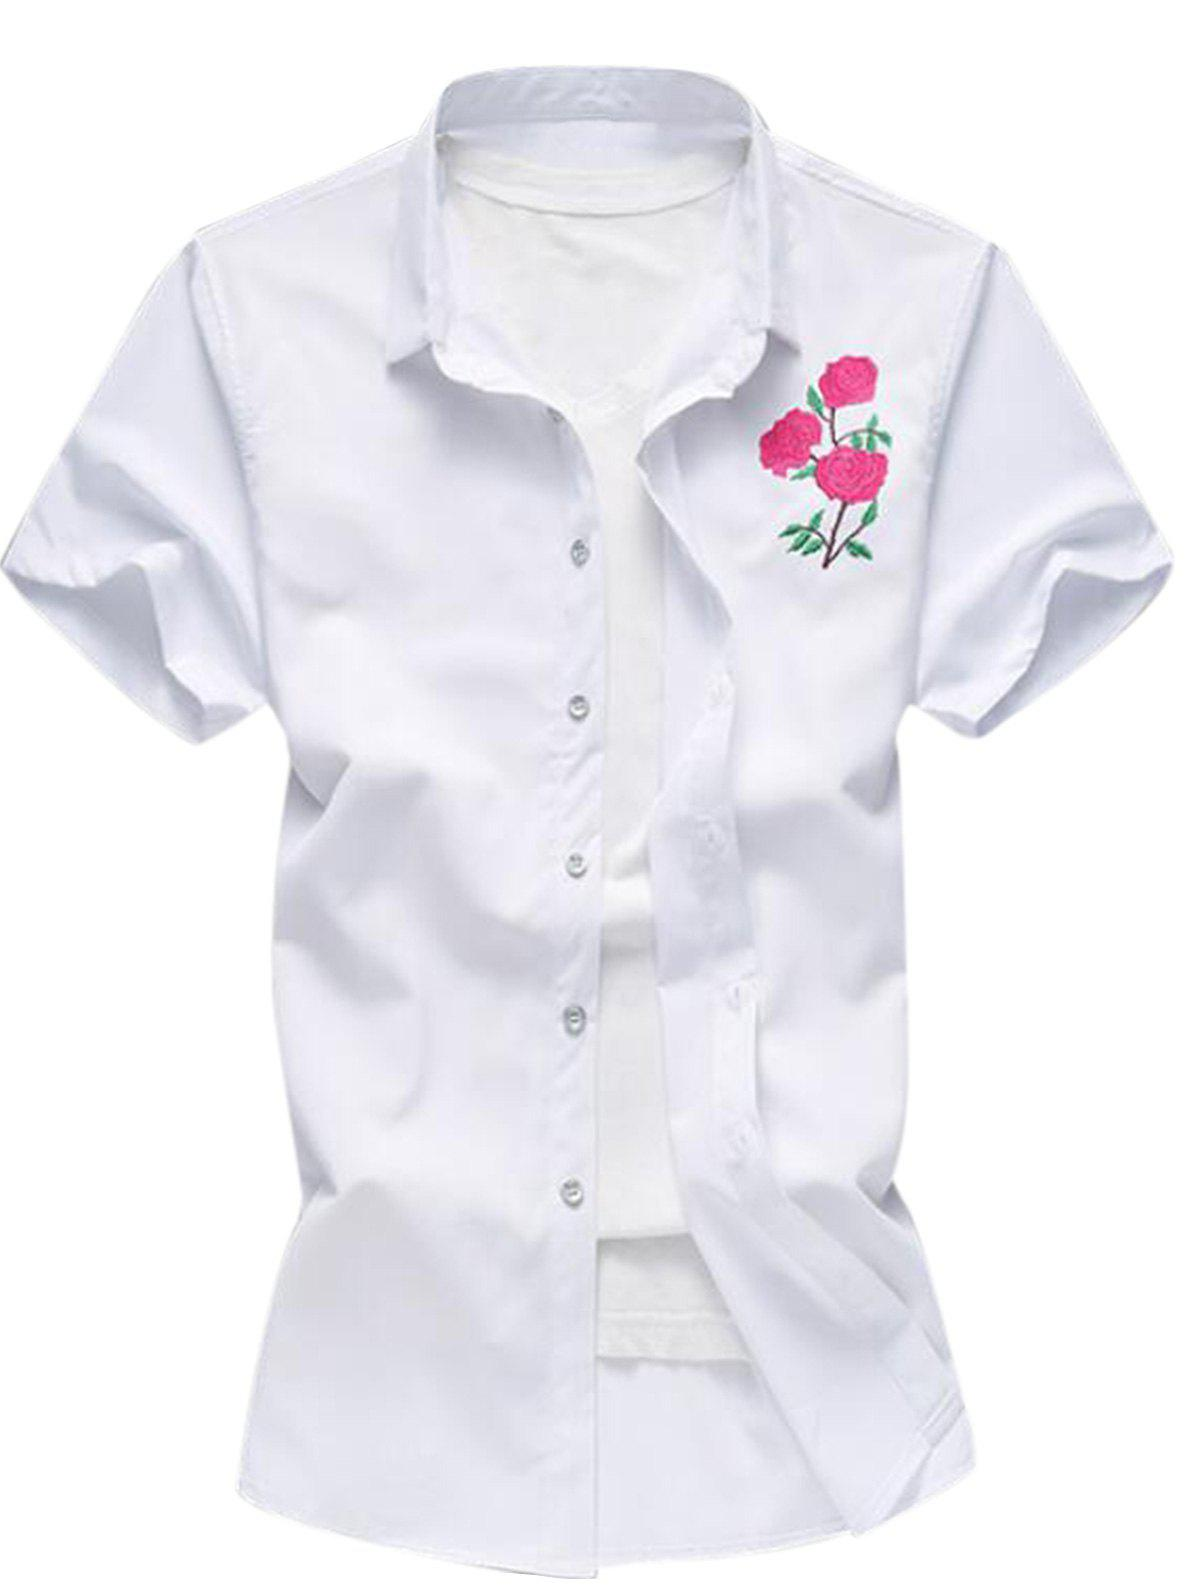 Sale Embroidered Turndown Collar Short Sleeve Shirt